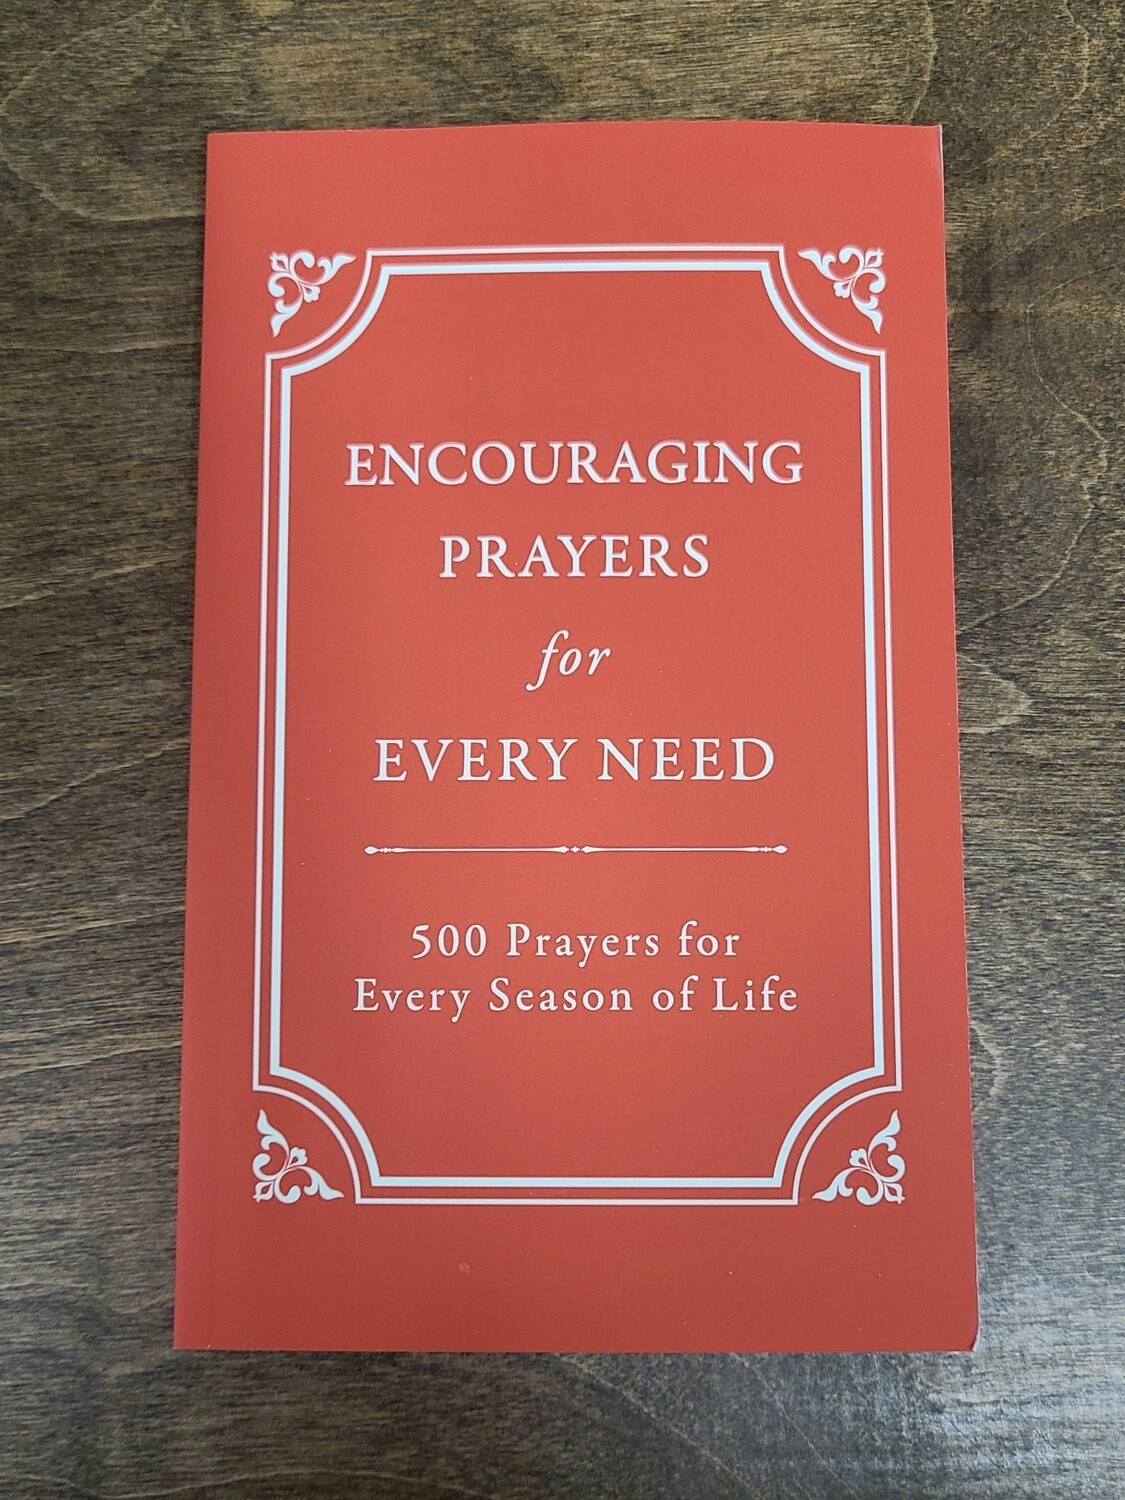 Encouraging Prayers for Every Need: 500 Prayers for Every Season of Life by Rebecca Currington